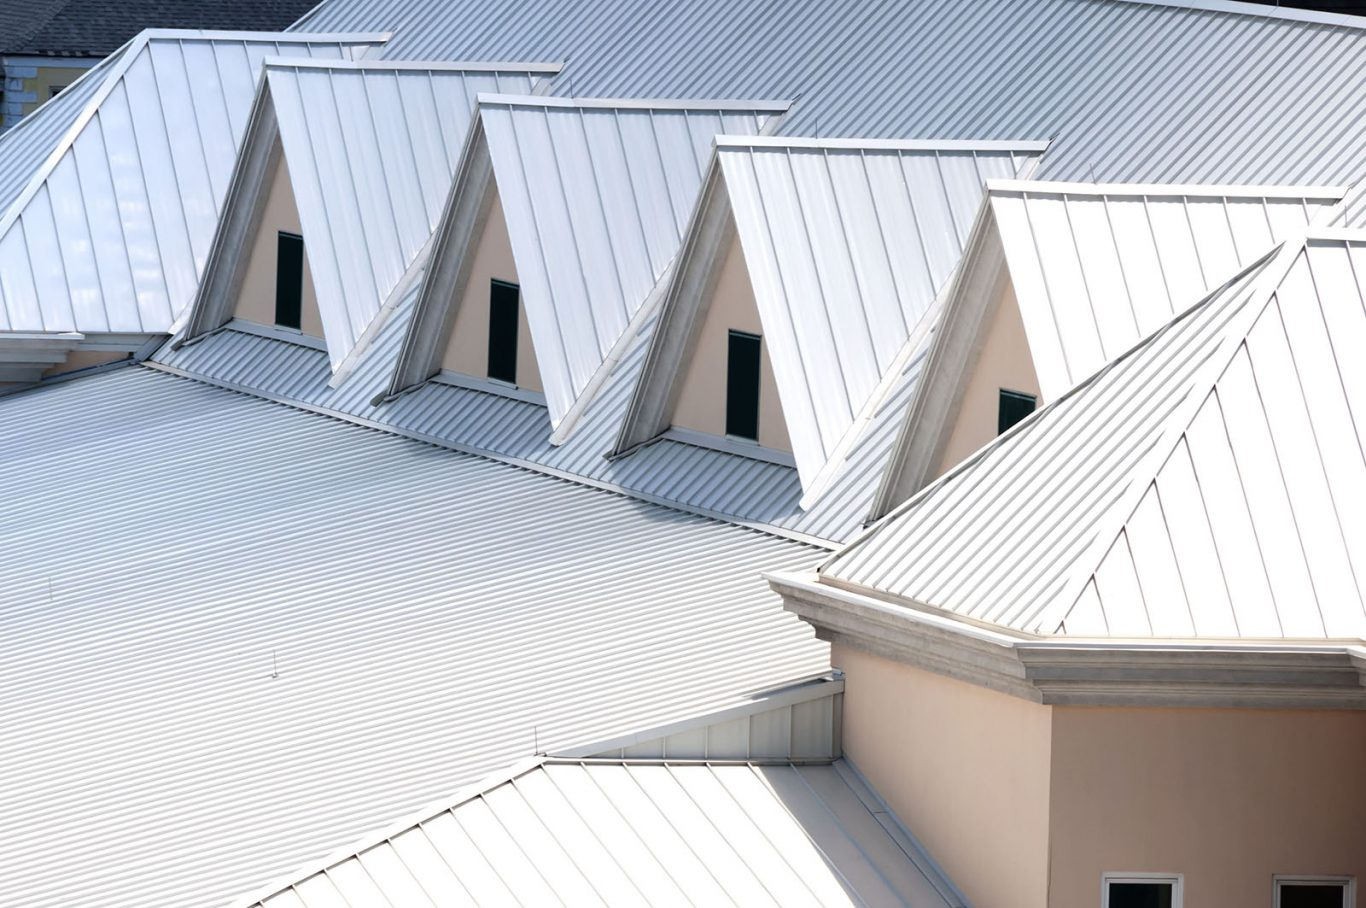 4 Good Reasons to Have a Roofing Contractor Roof Your Home in the Winter